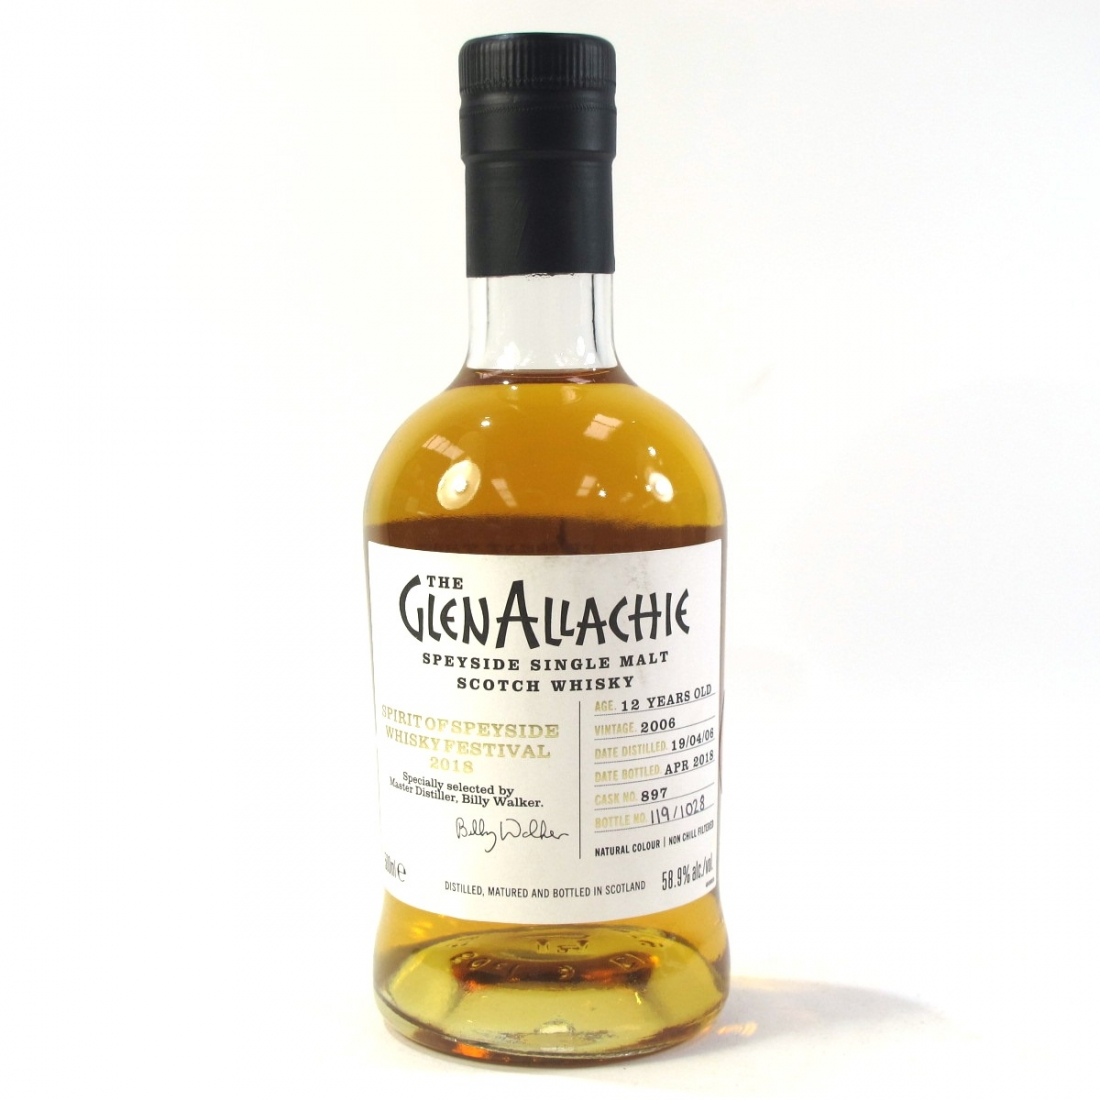 Glenallachie 2006 Single Cask 12 Year Old 50cl / Spirit of Speyside 2018 - Signed